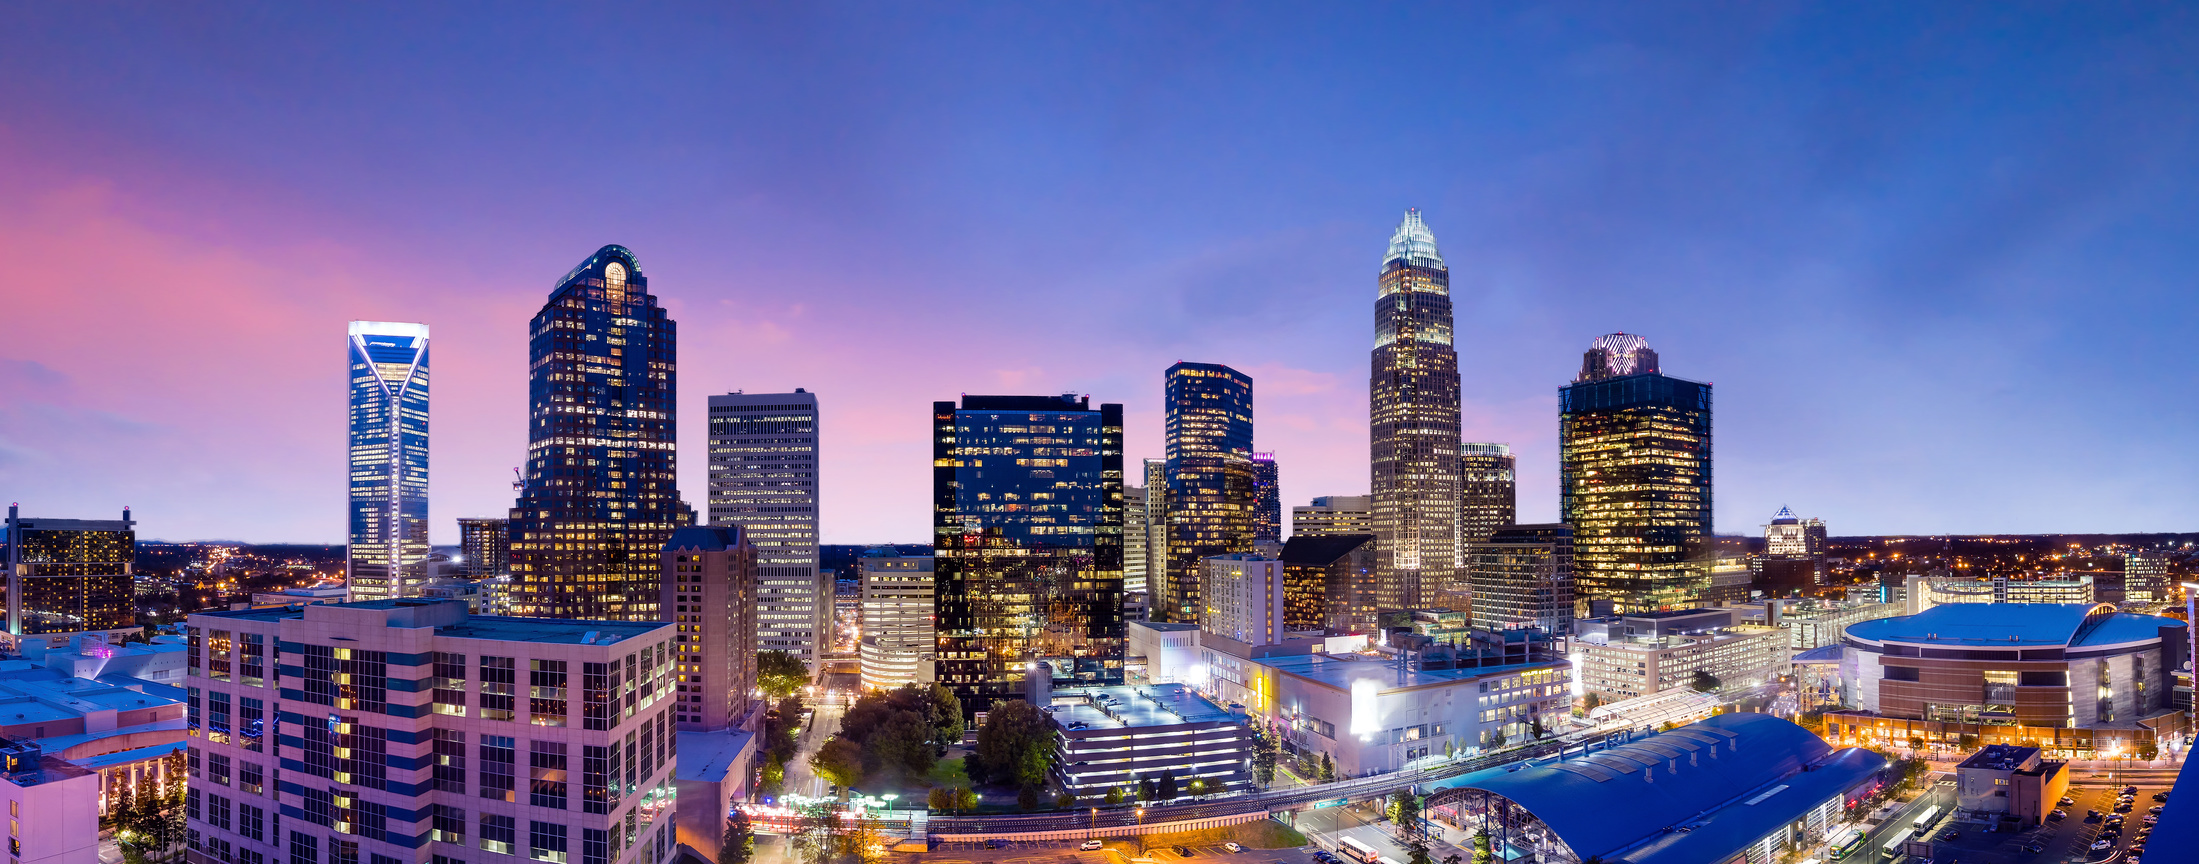 Charlotte, North Carolina; North Carolina